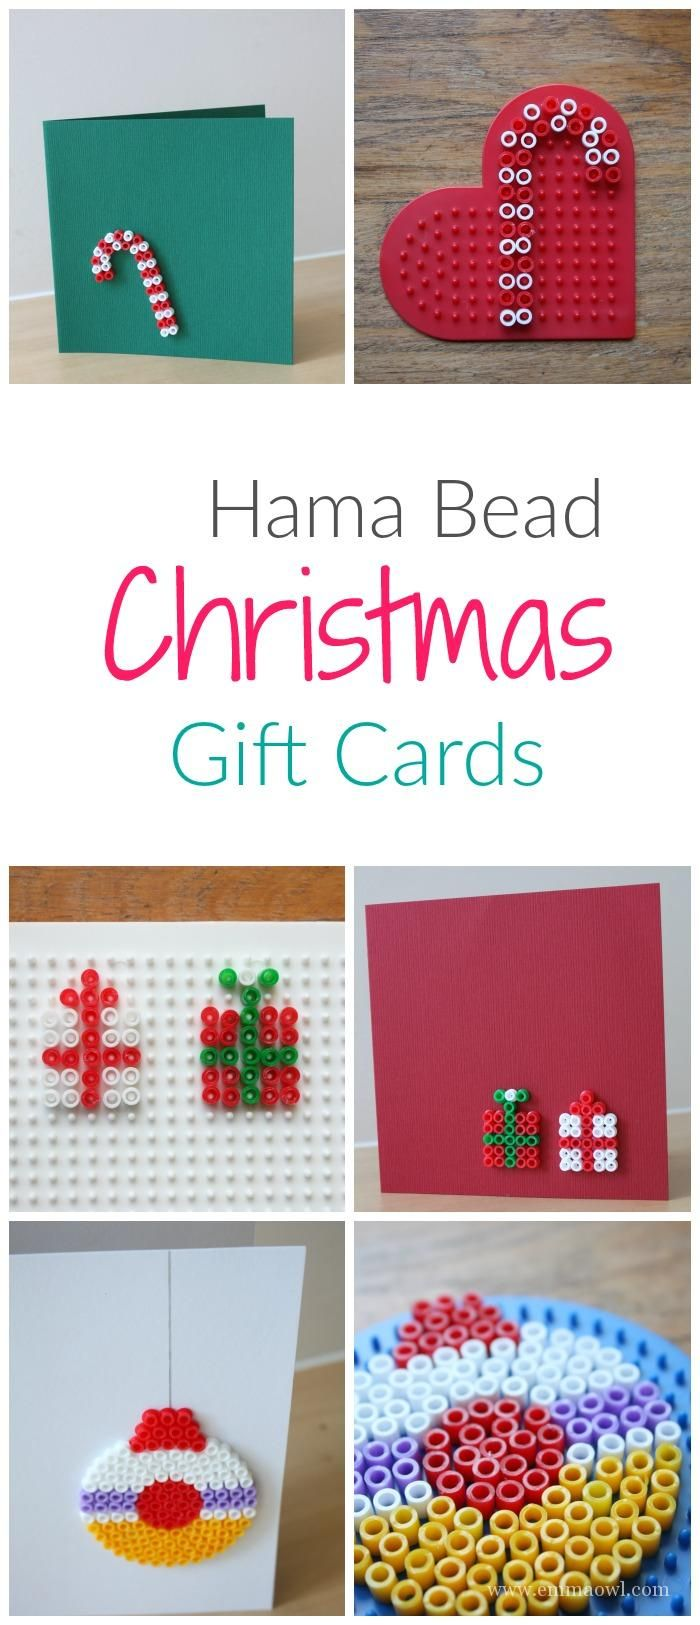 Easy to make diy christmas greeting cards great hama bead craft easy to make diy christmas greeting cards great hama bead craft project for kids and adults m4hsunfo